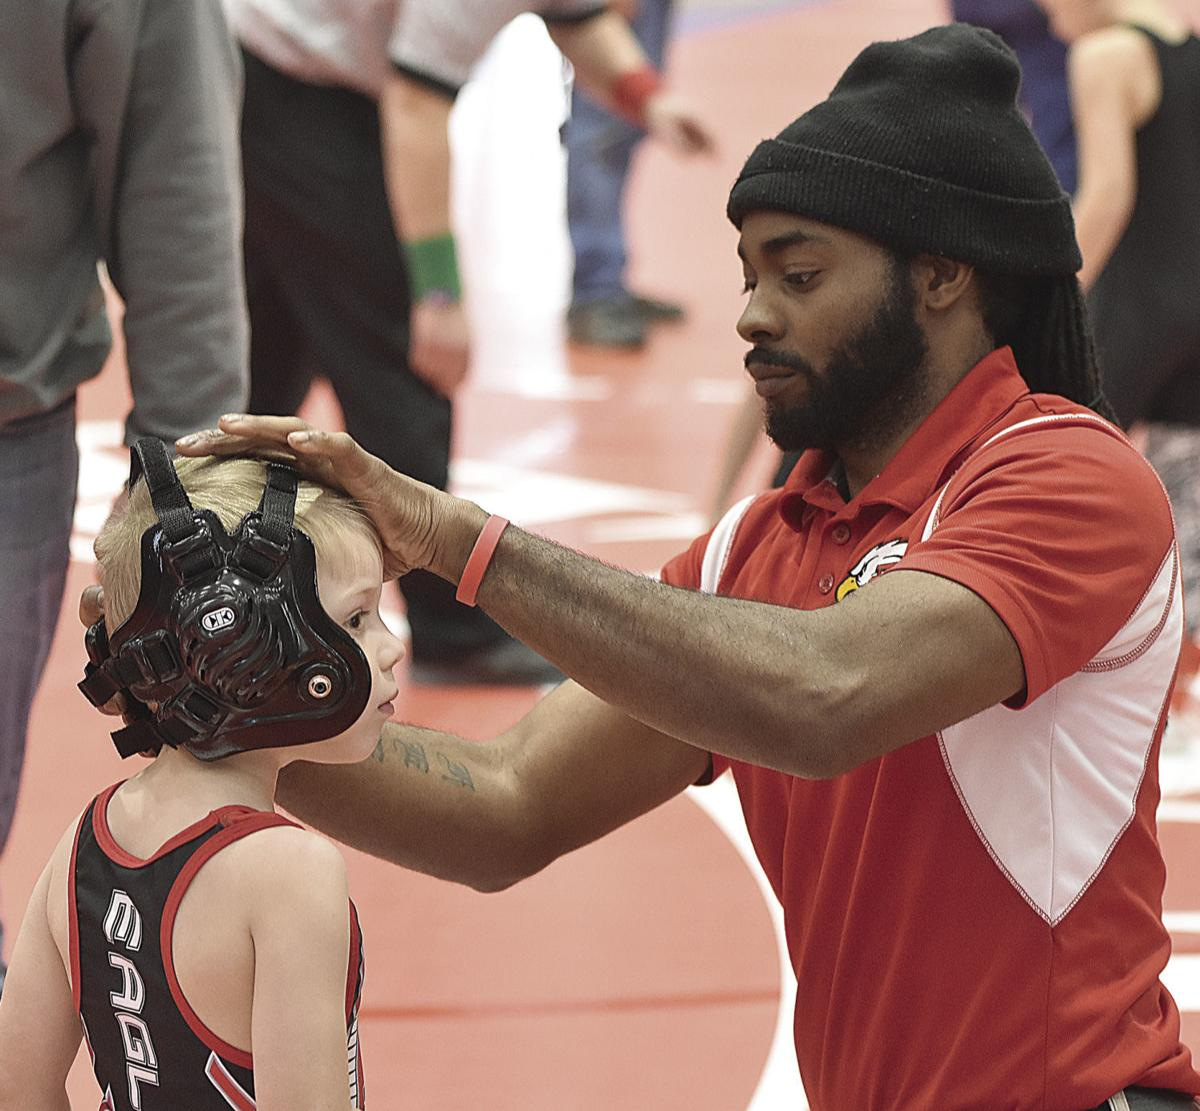 Franklin County wrestlers finish 13th in Virginia Beach tournament